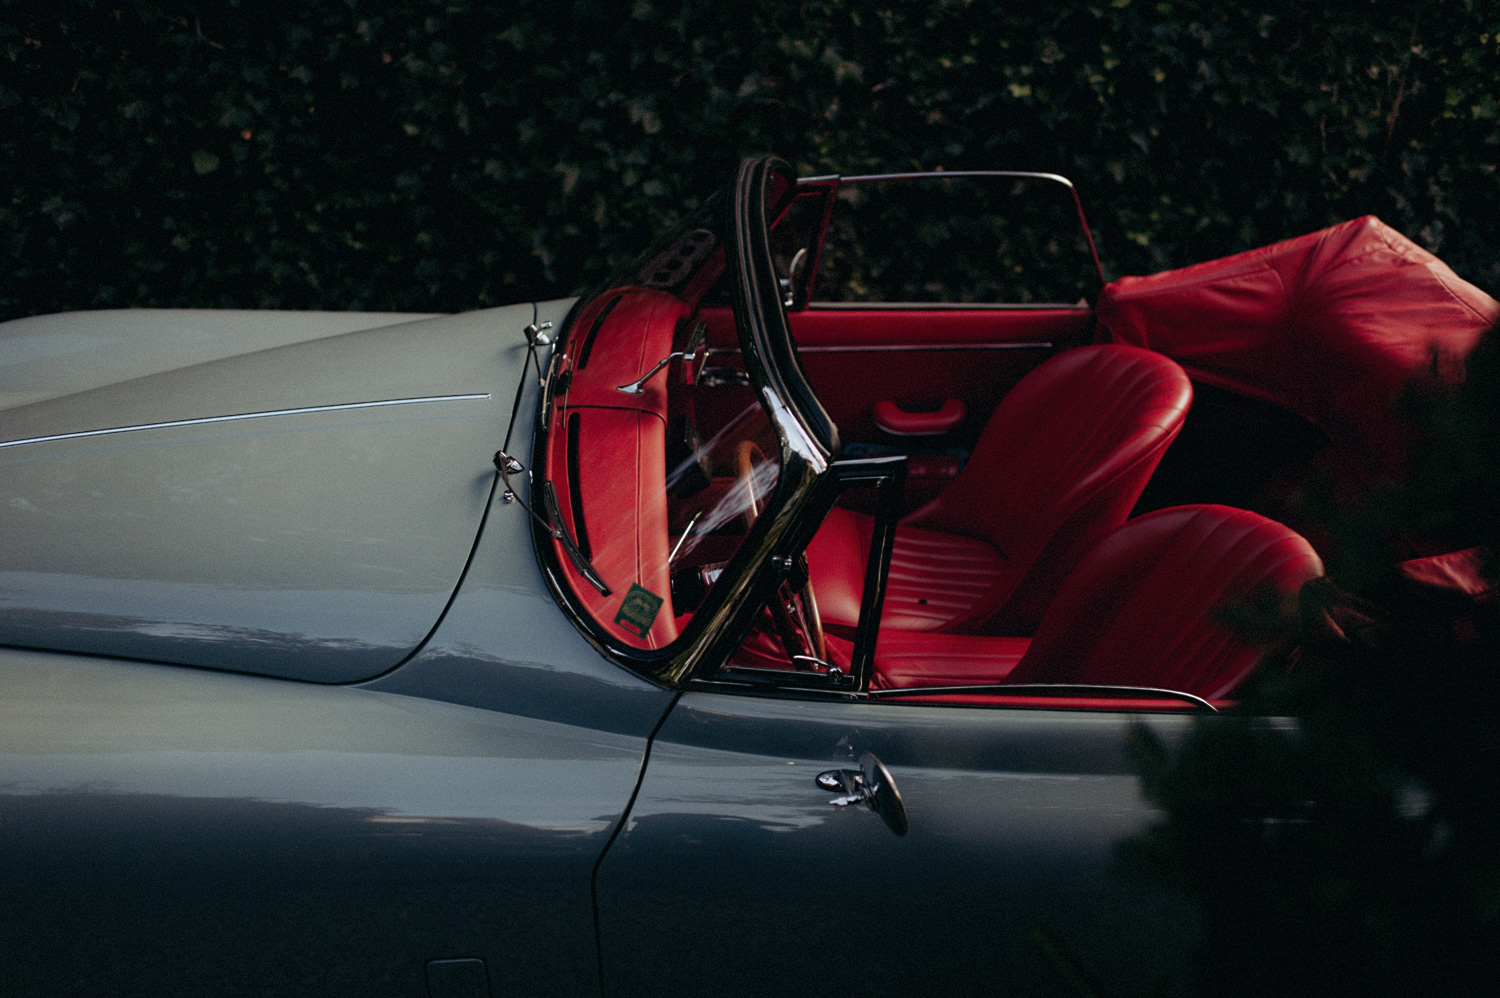 Oldtimer car with red interior at wedding